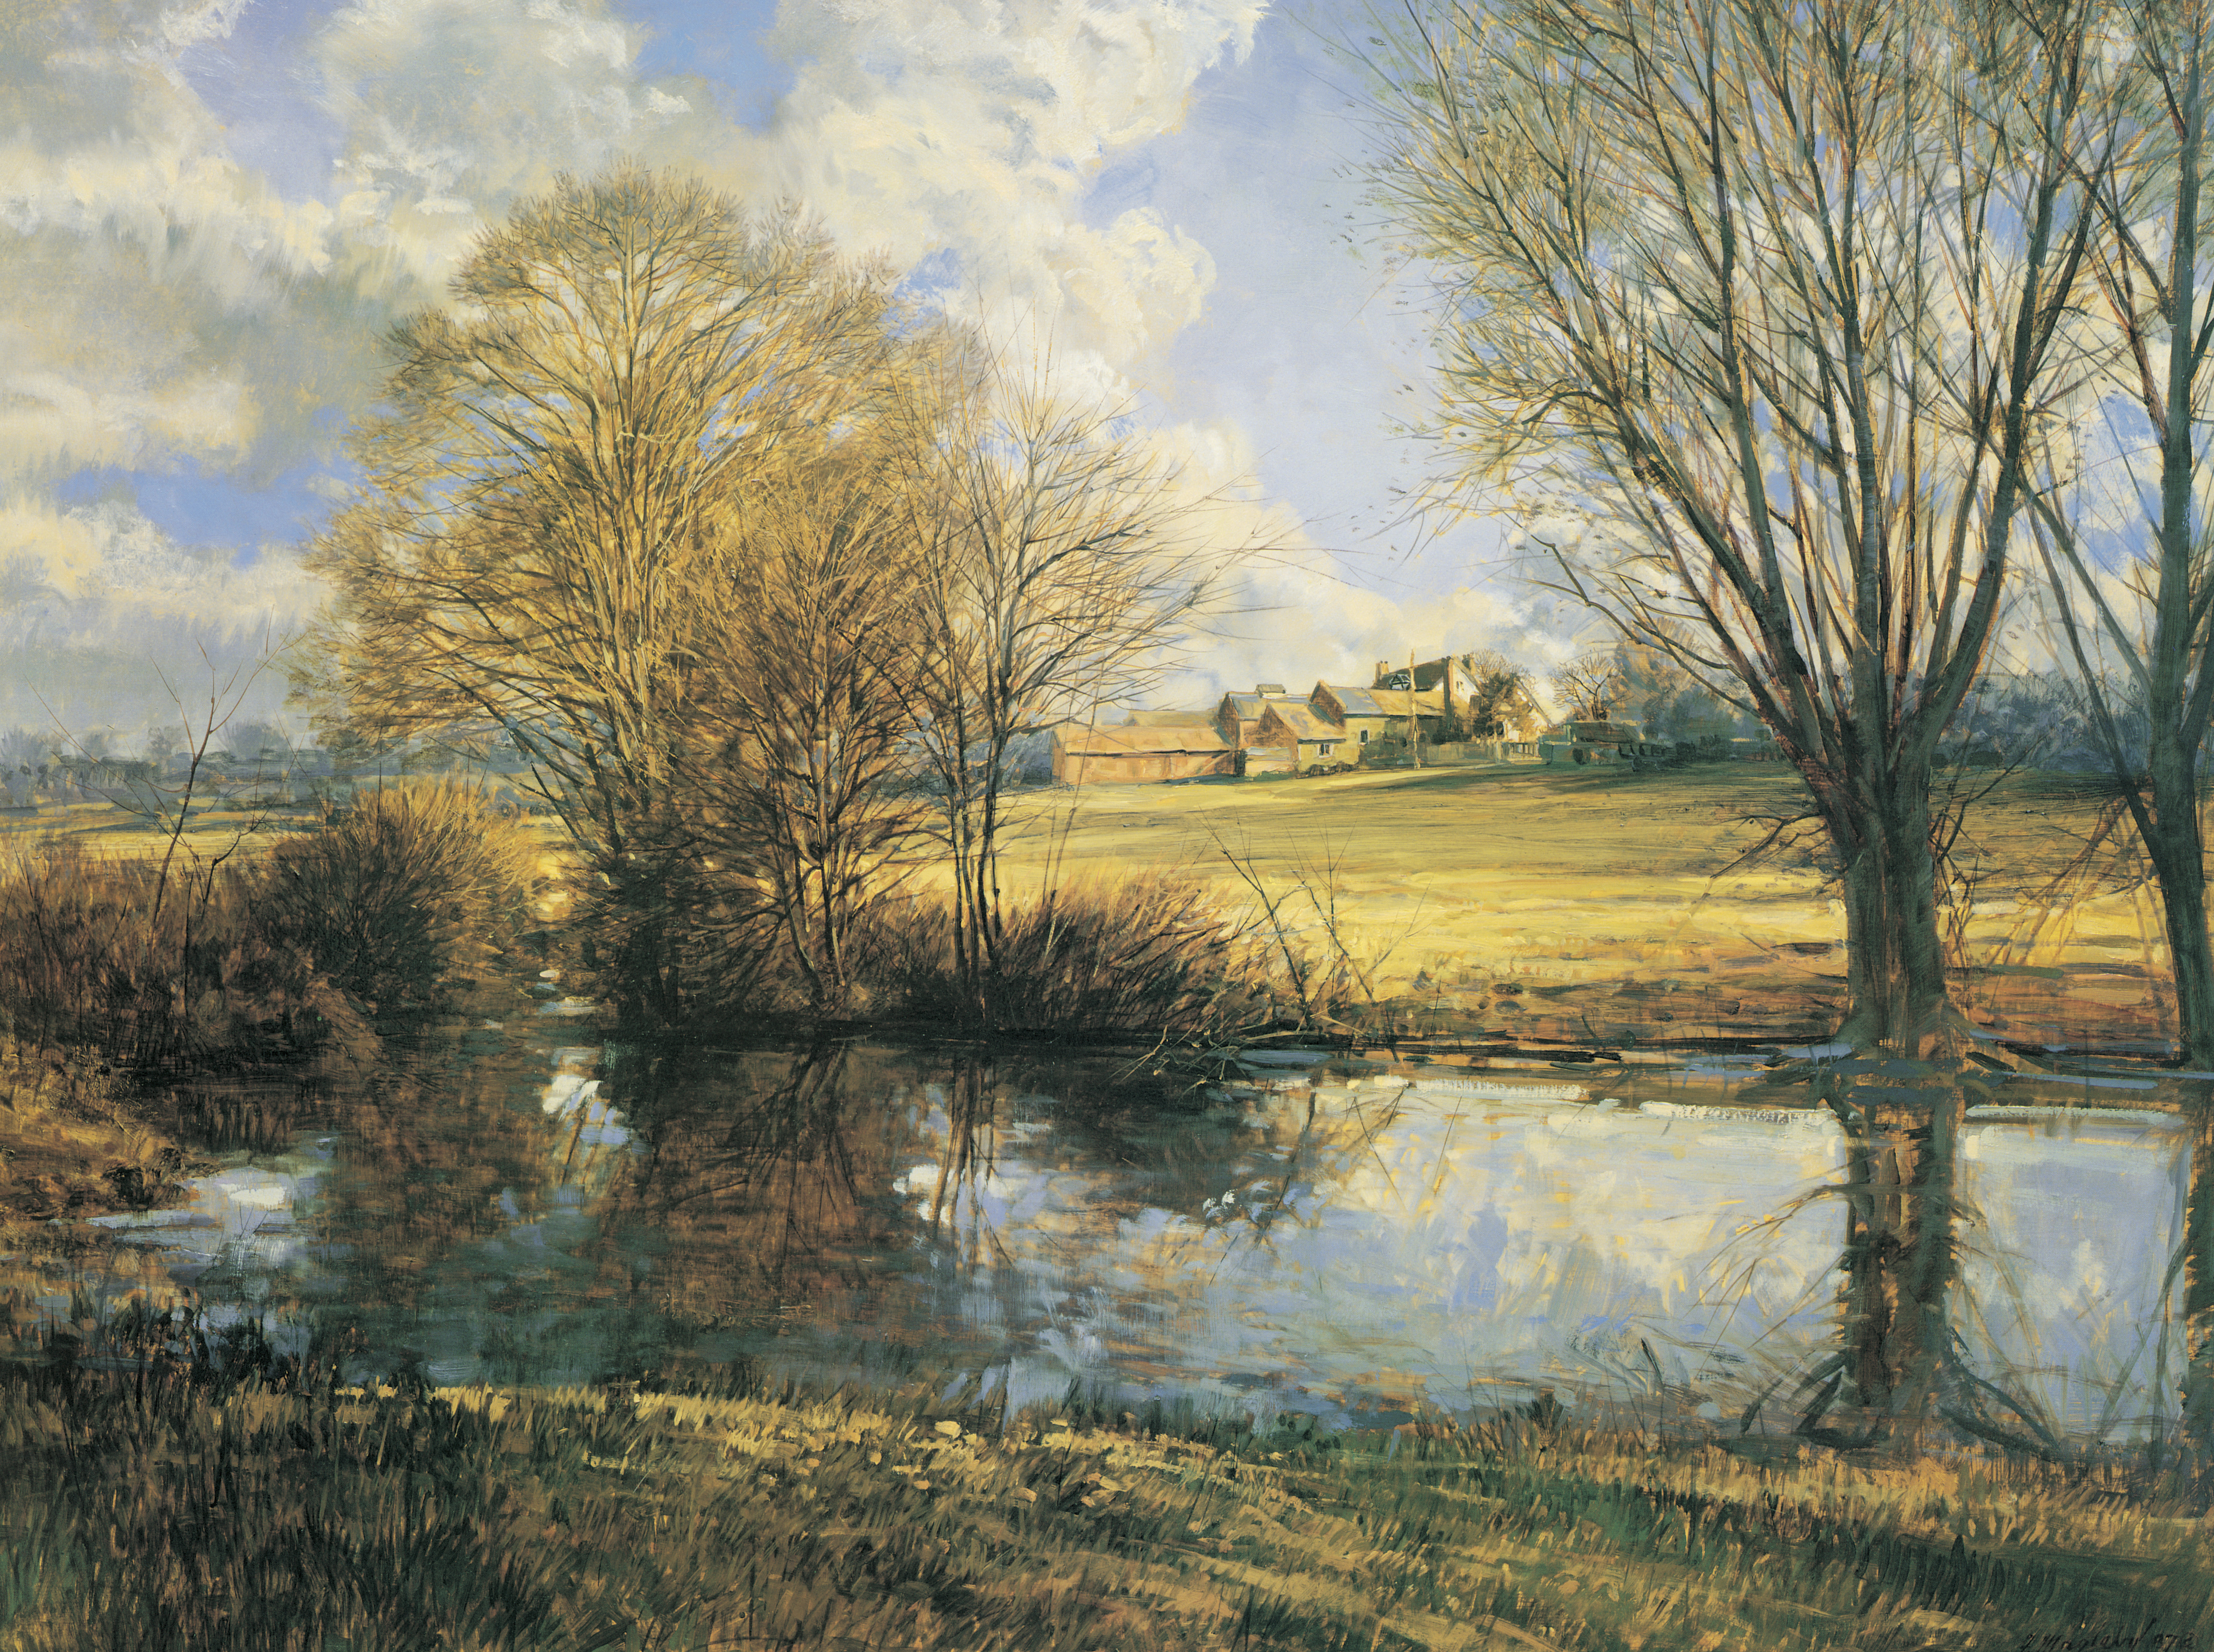 Benbow Farm and Pond, by Francis R. (Frank) Magleby